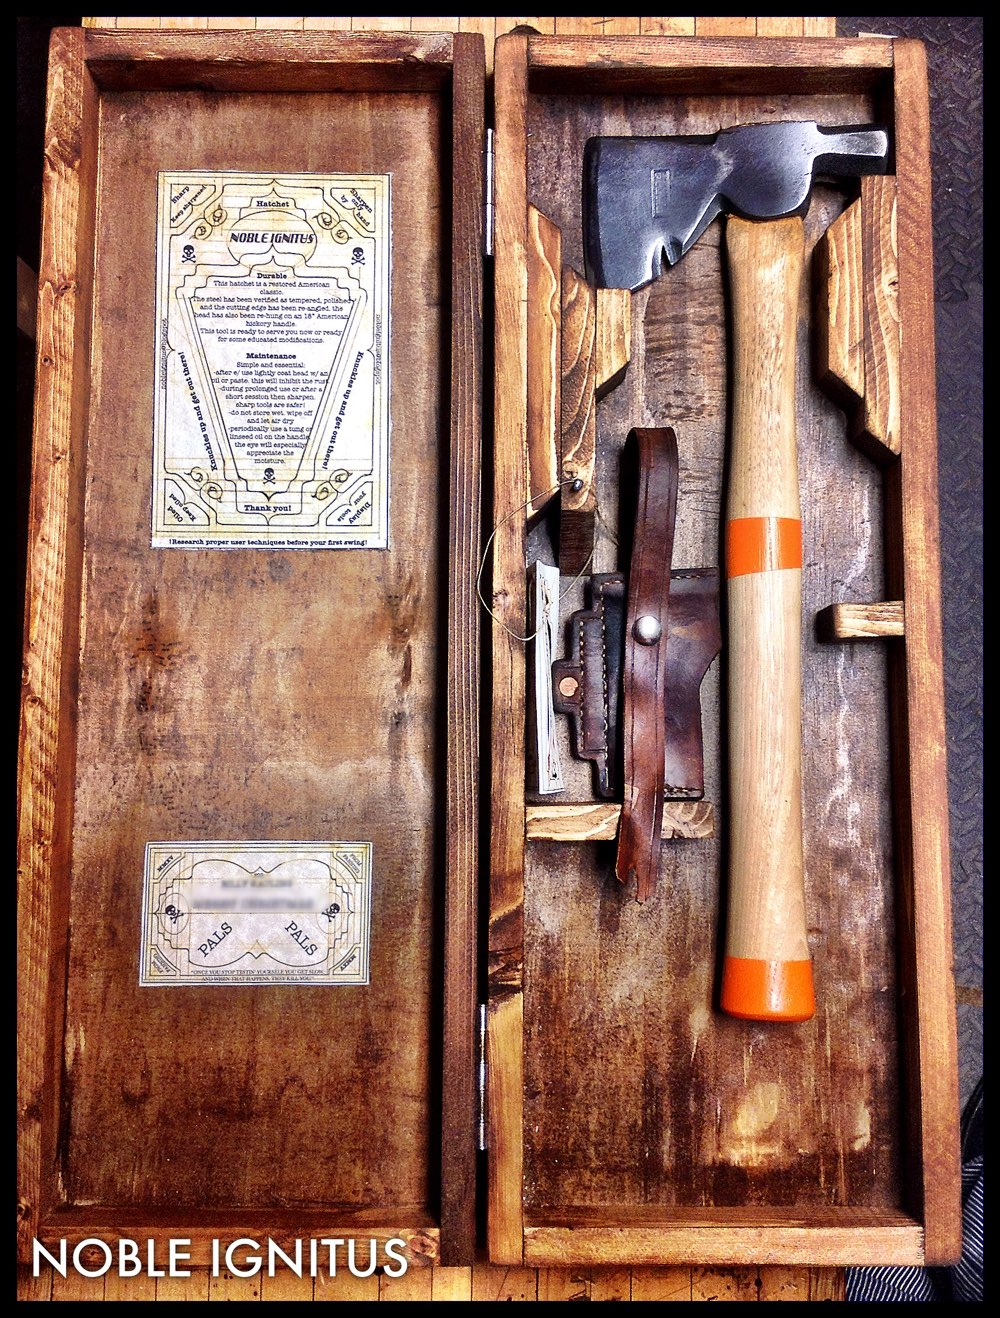 Genuine Plumb carpenter's hatchet with crate and hand sewn full grain leather sheath ready to be commanded by the new owner.